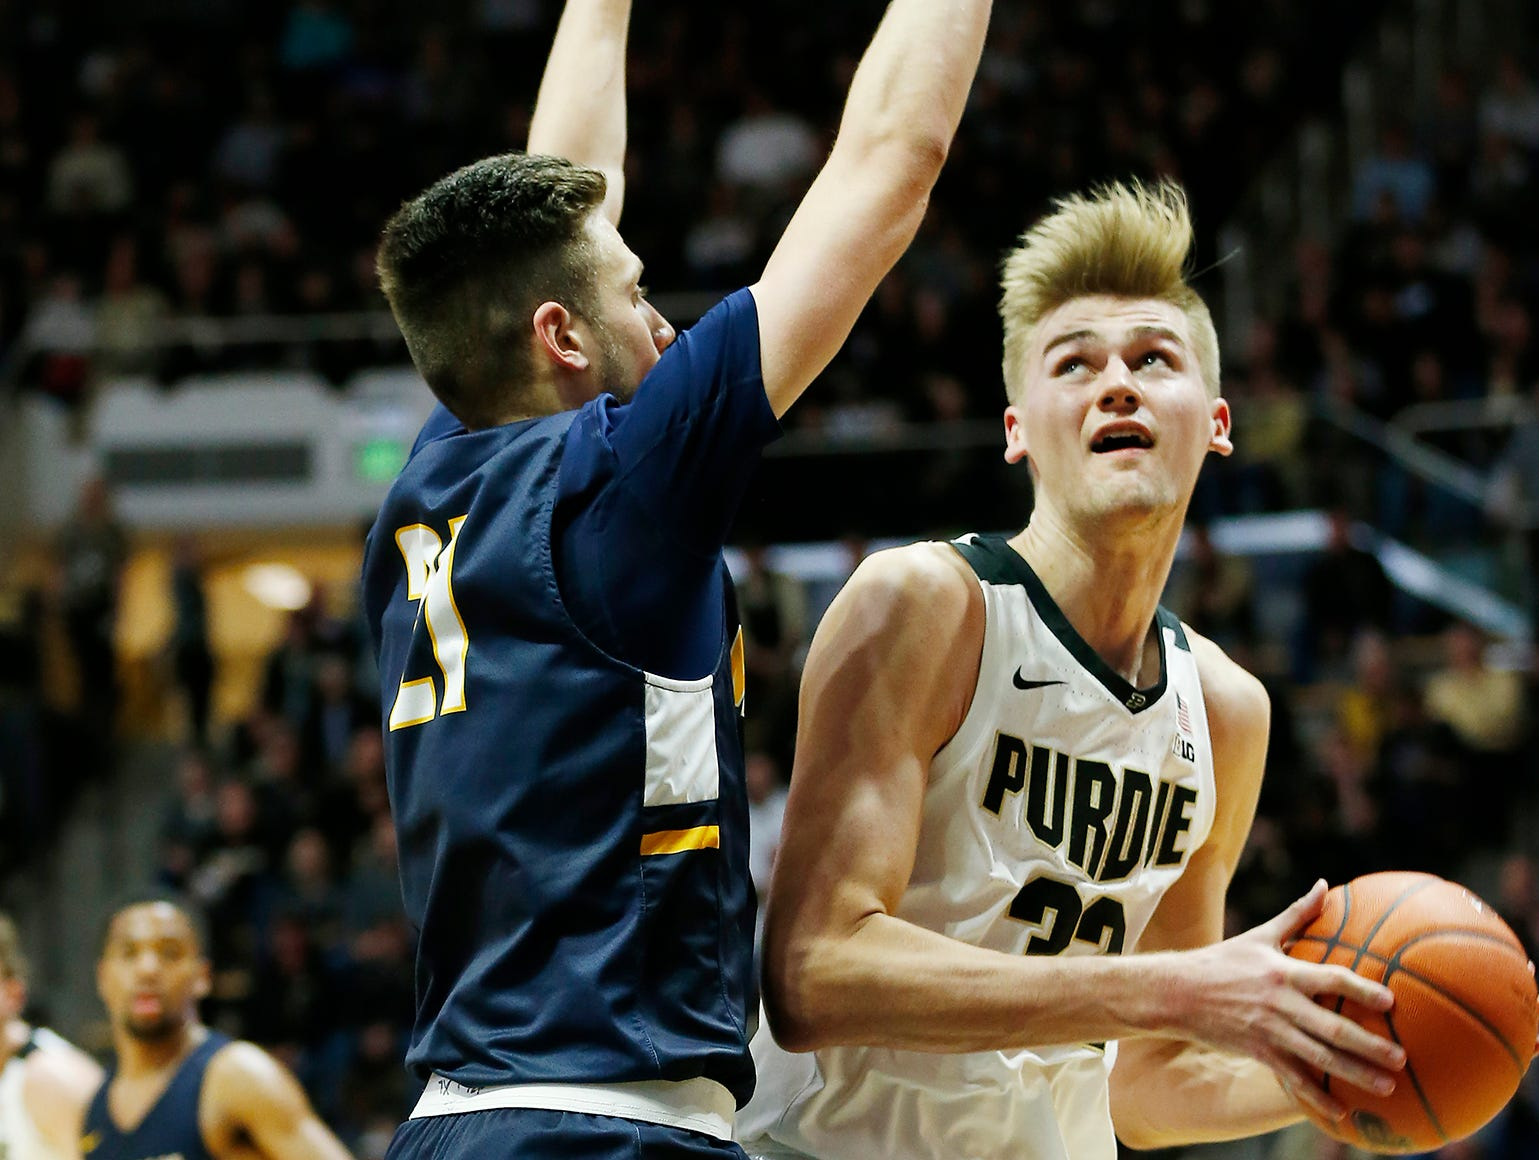 Matt Haarms of Purdue works for a shot against Cameron Wolter of Marian University Thursday, November 1, 2018, at Mackey Arena. Purdue defeated Marian University 75-56.